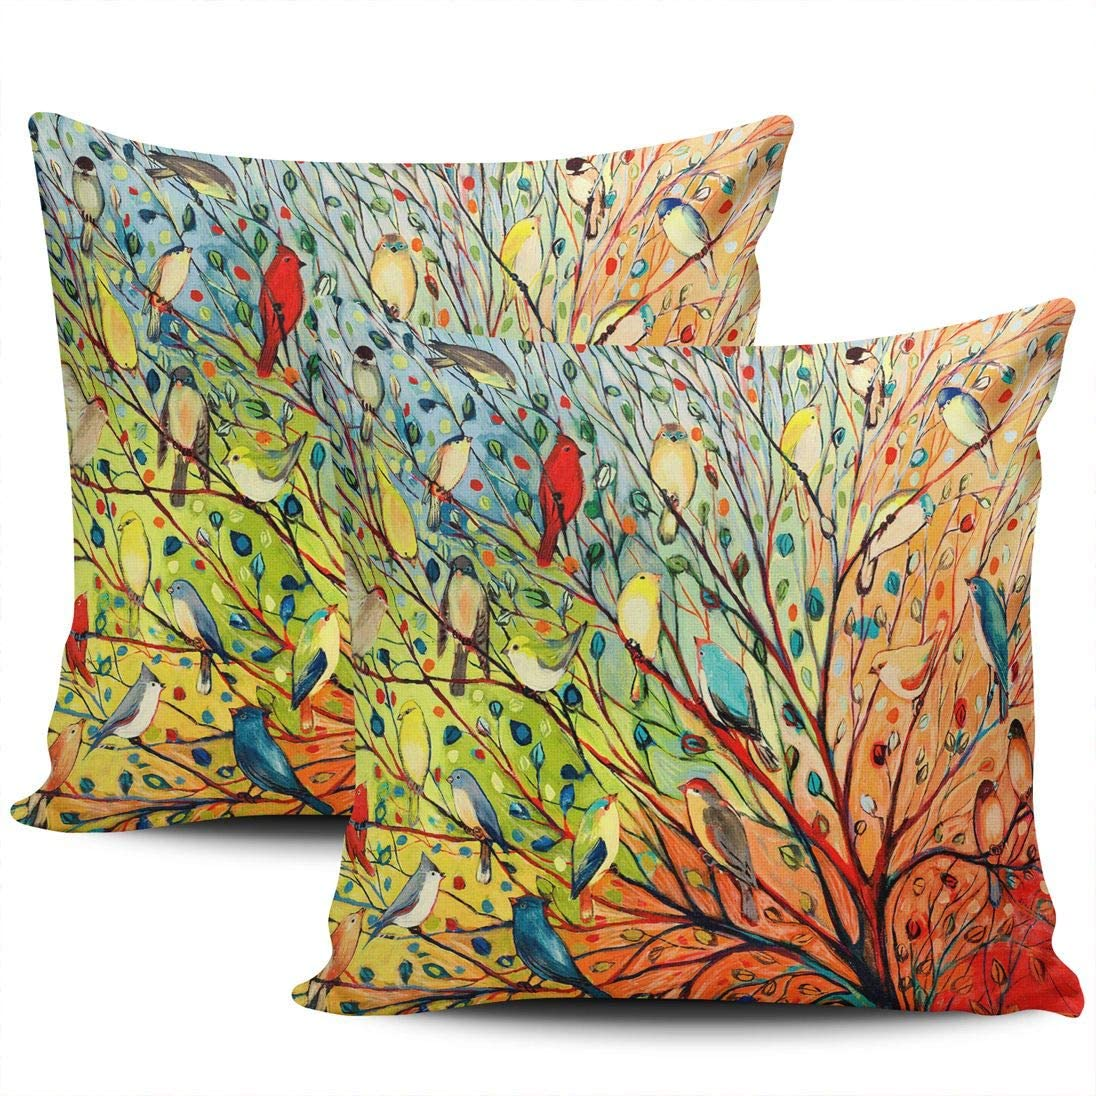 LEKAIHUAI Home Decoration Throw Pillow Covers Colorful Life Tree with Birds Pillowcases Square Two Sides Print 22x22 Inches Set of 2